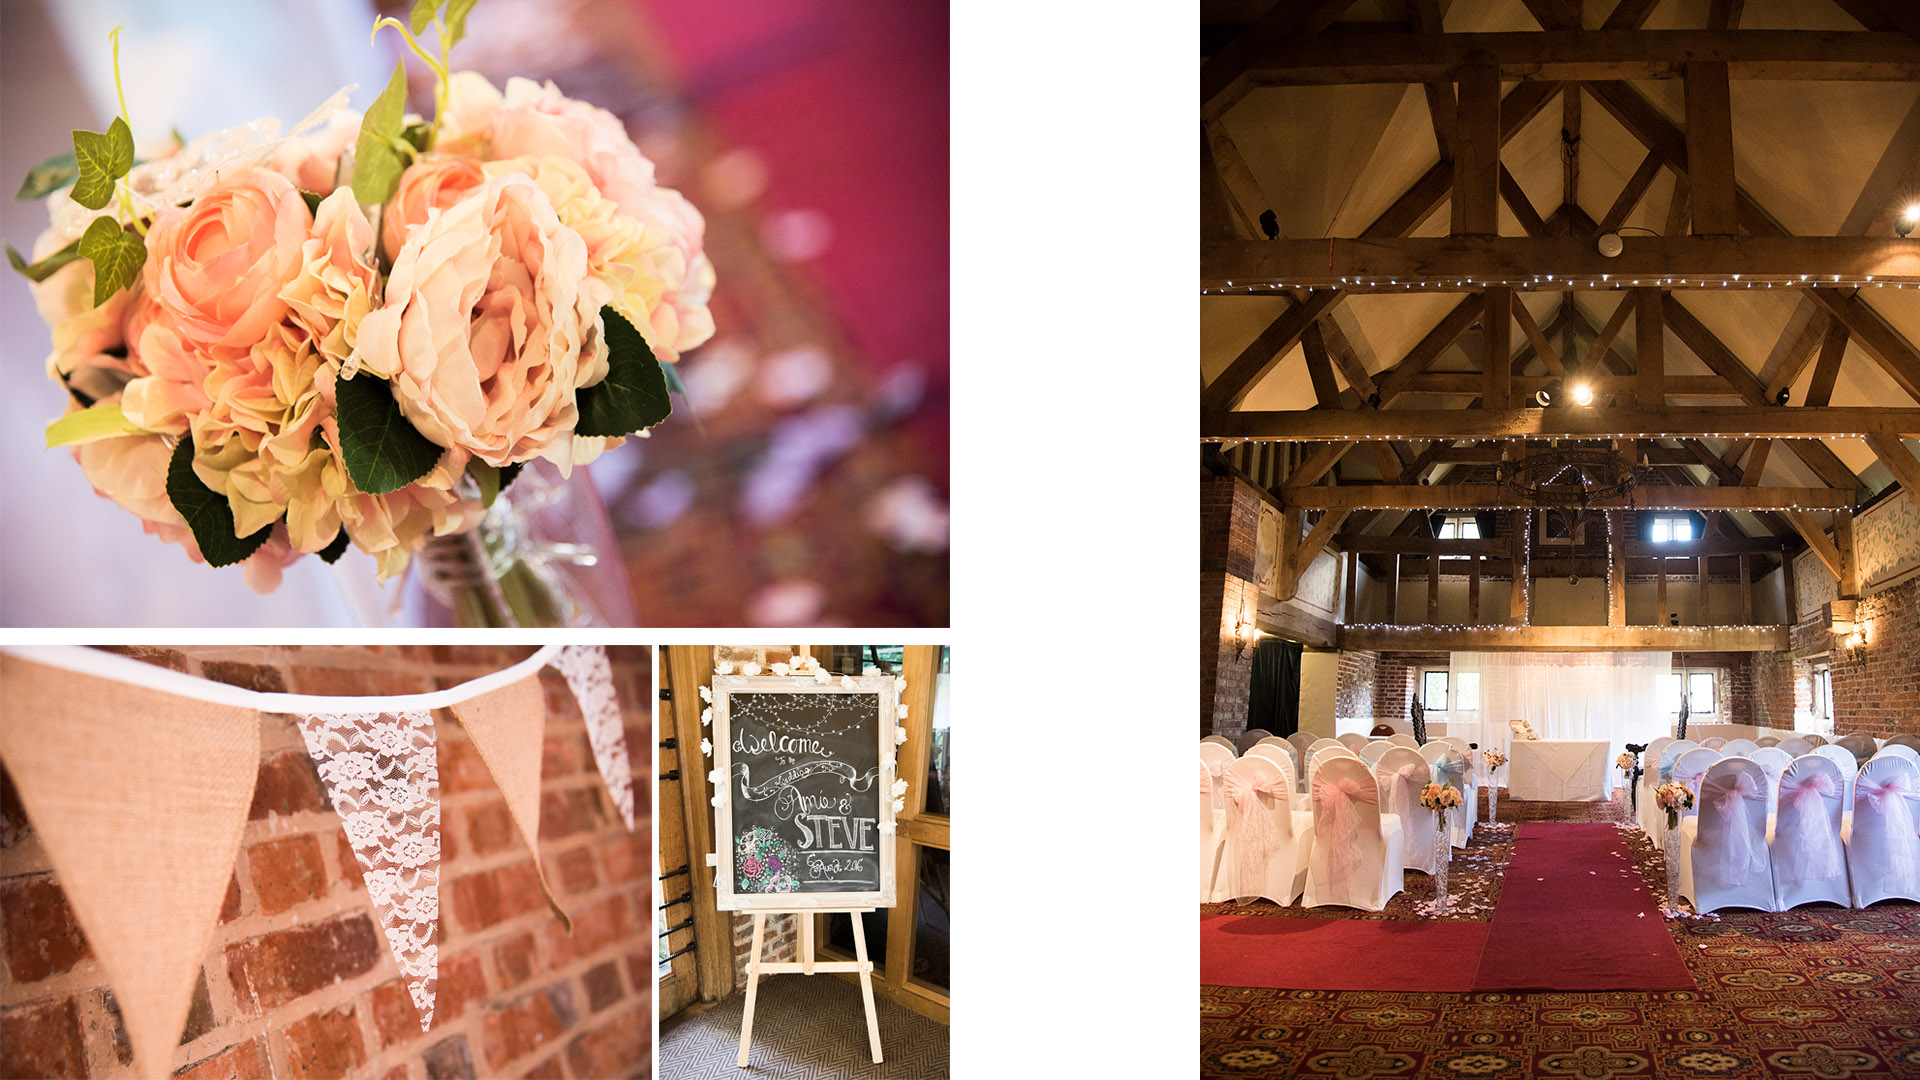 Madely Court Hotel, image by Warwickshire wedding photographer AJTImages